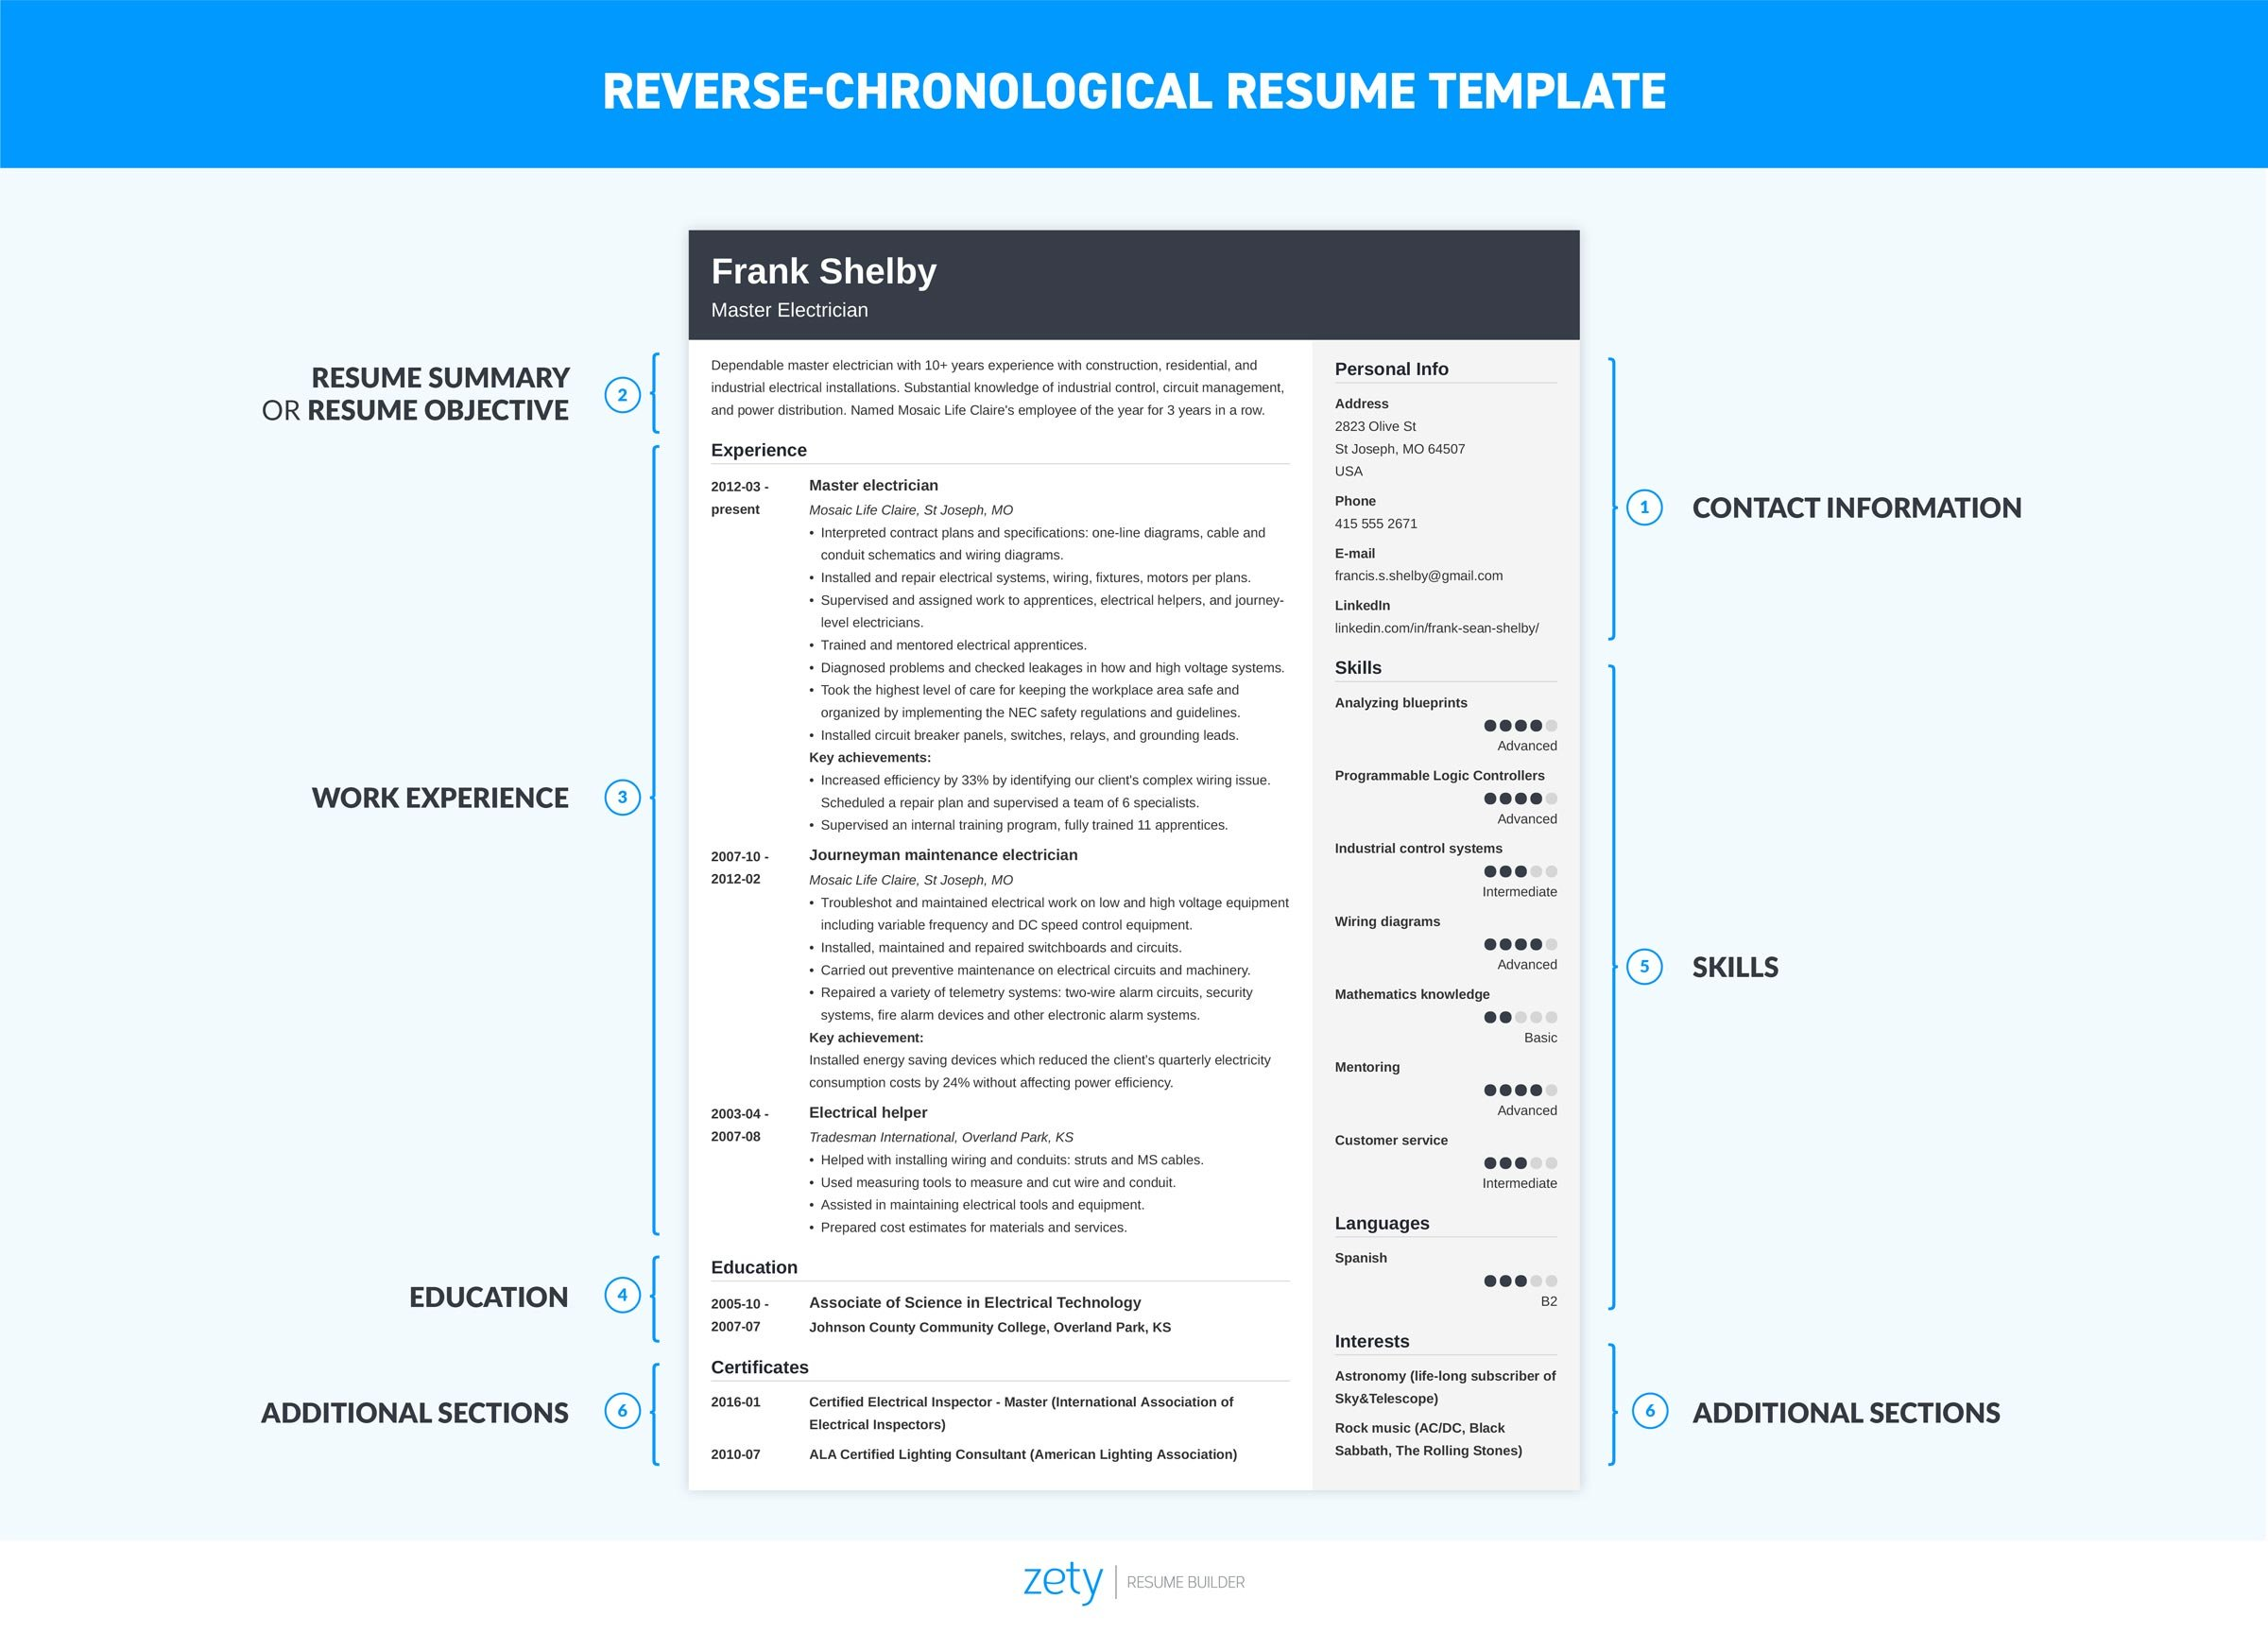 chronological resume template format examples good to write customer service job Resume Good Resume Format 2016